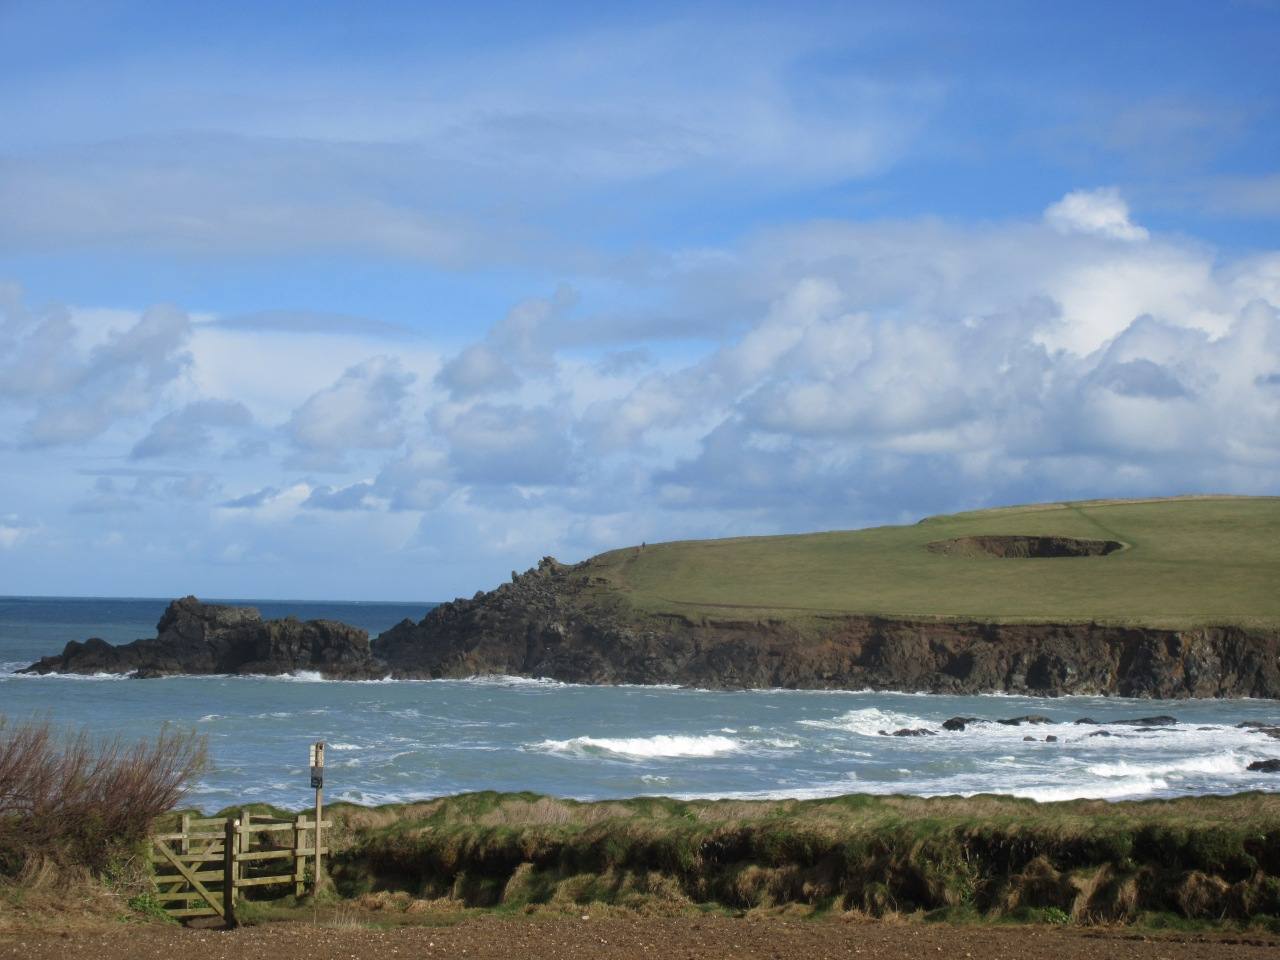 Best walks with a view: Trevone to St. Merryn